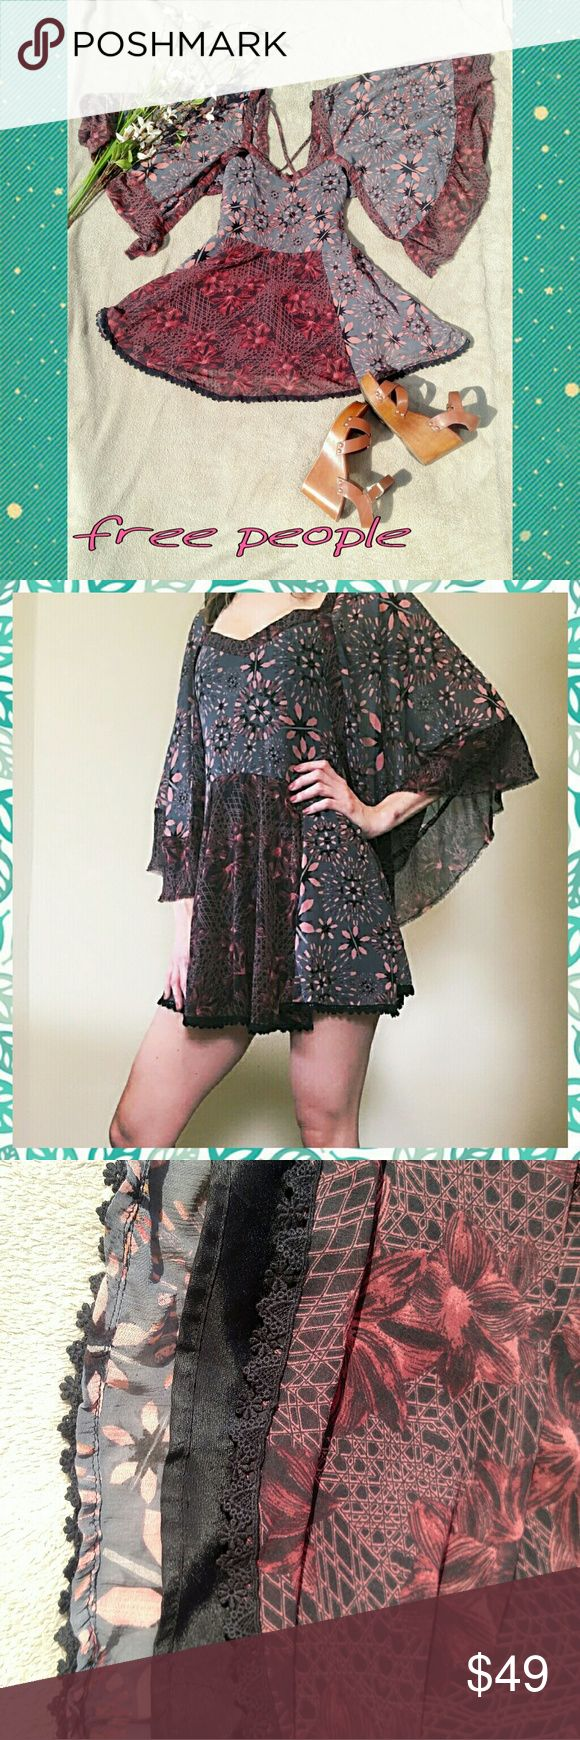 *RARE* Free People Heart Of Gold Dress-extra small Stay golden in the Heart of Gold Mini Dress from Free People. The printed bell sleeve dress has a crisscross back detail, edgy raw trim for a versatile, boho chic look. Throw it on for all your summer concerts or a date night with your sweetheart.  100% Rayon Free People Dresses Mini